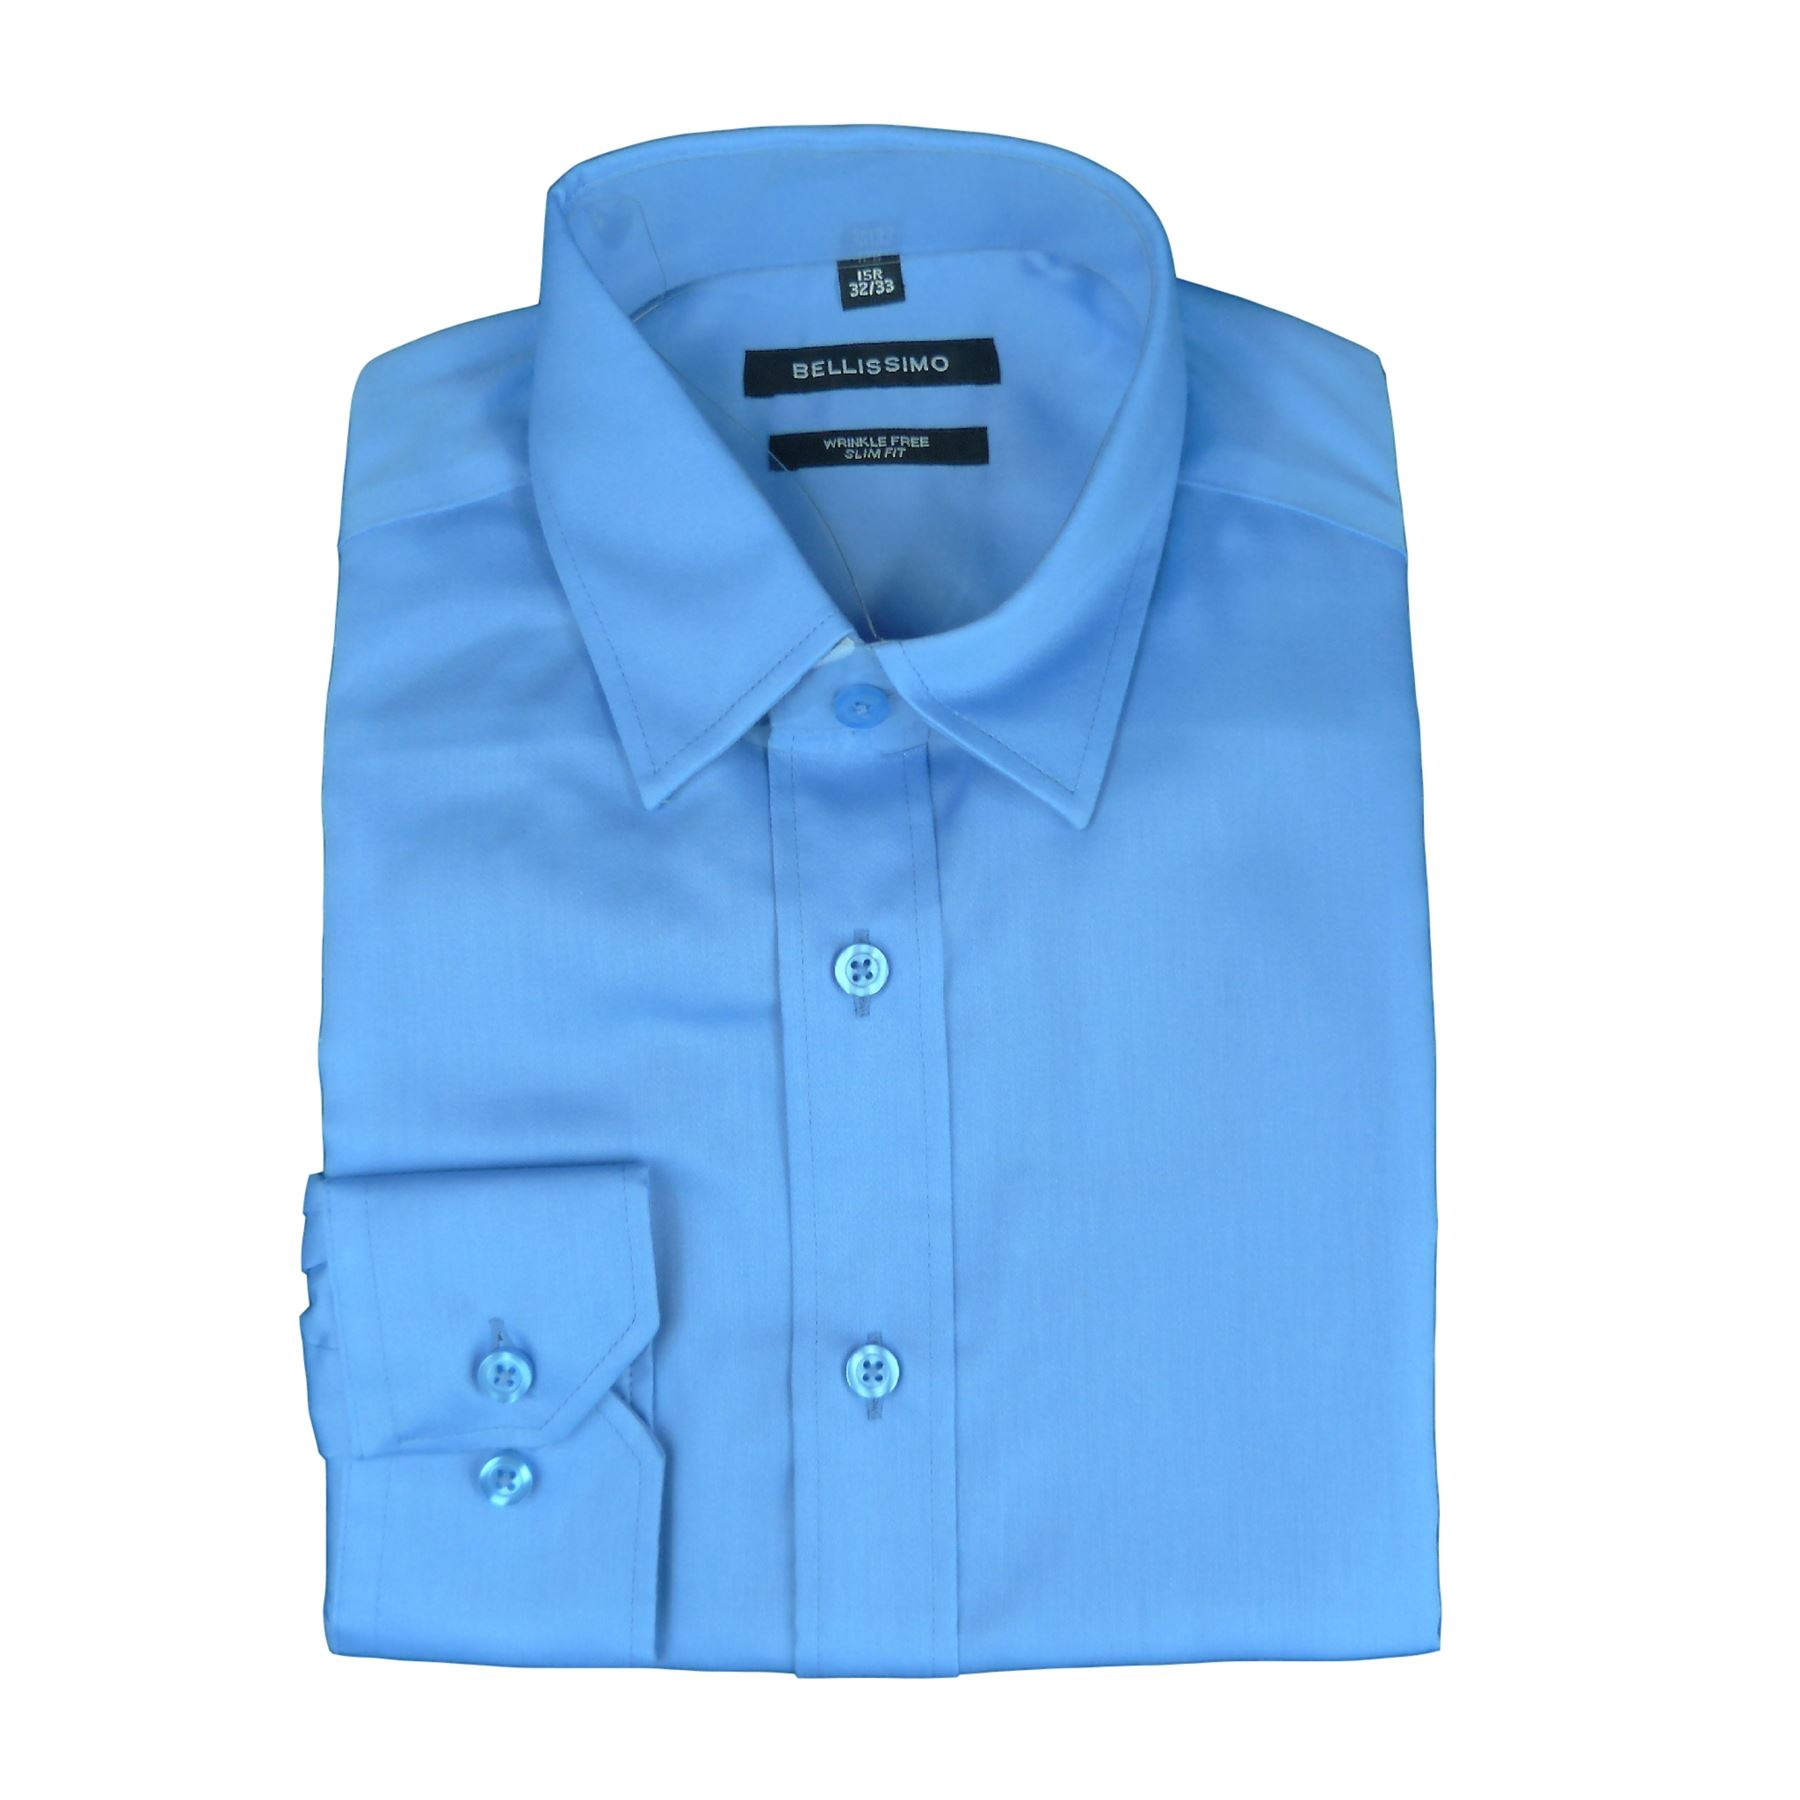 Bellissimo luxury slim fit wrinkle free cotton rich shirts for Wrinkle free dress shirts amazon